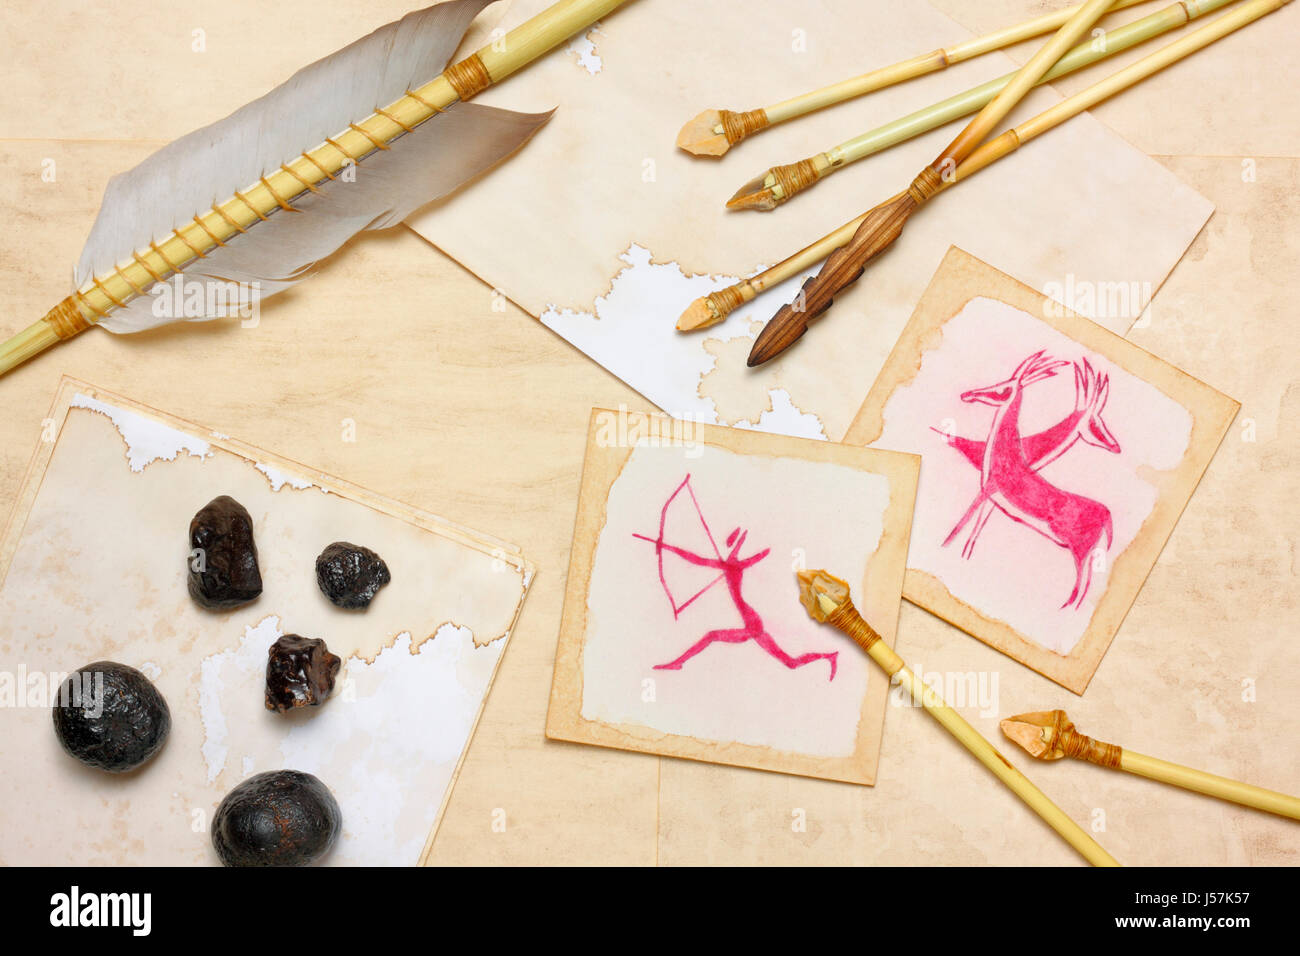 Nostalgic vintage still life with hunting drawings, primitive arrows and hematite lumps over aged paper sheets - Stock Image